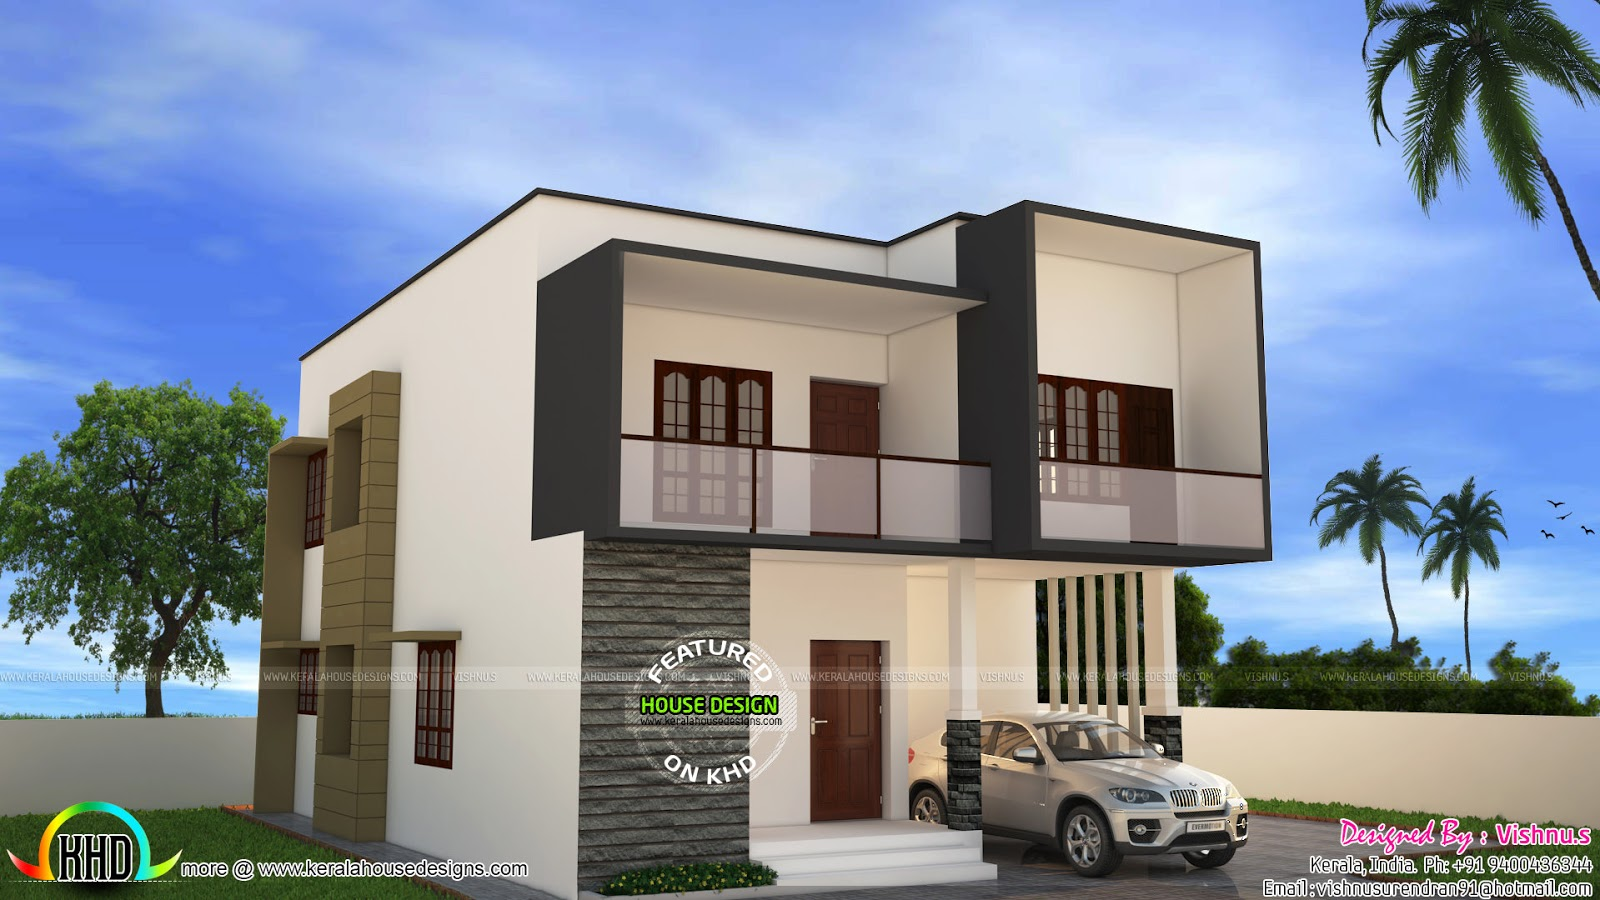 Simple modern house by vishnu s home design decor Simple modern house plans